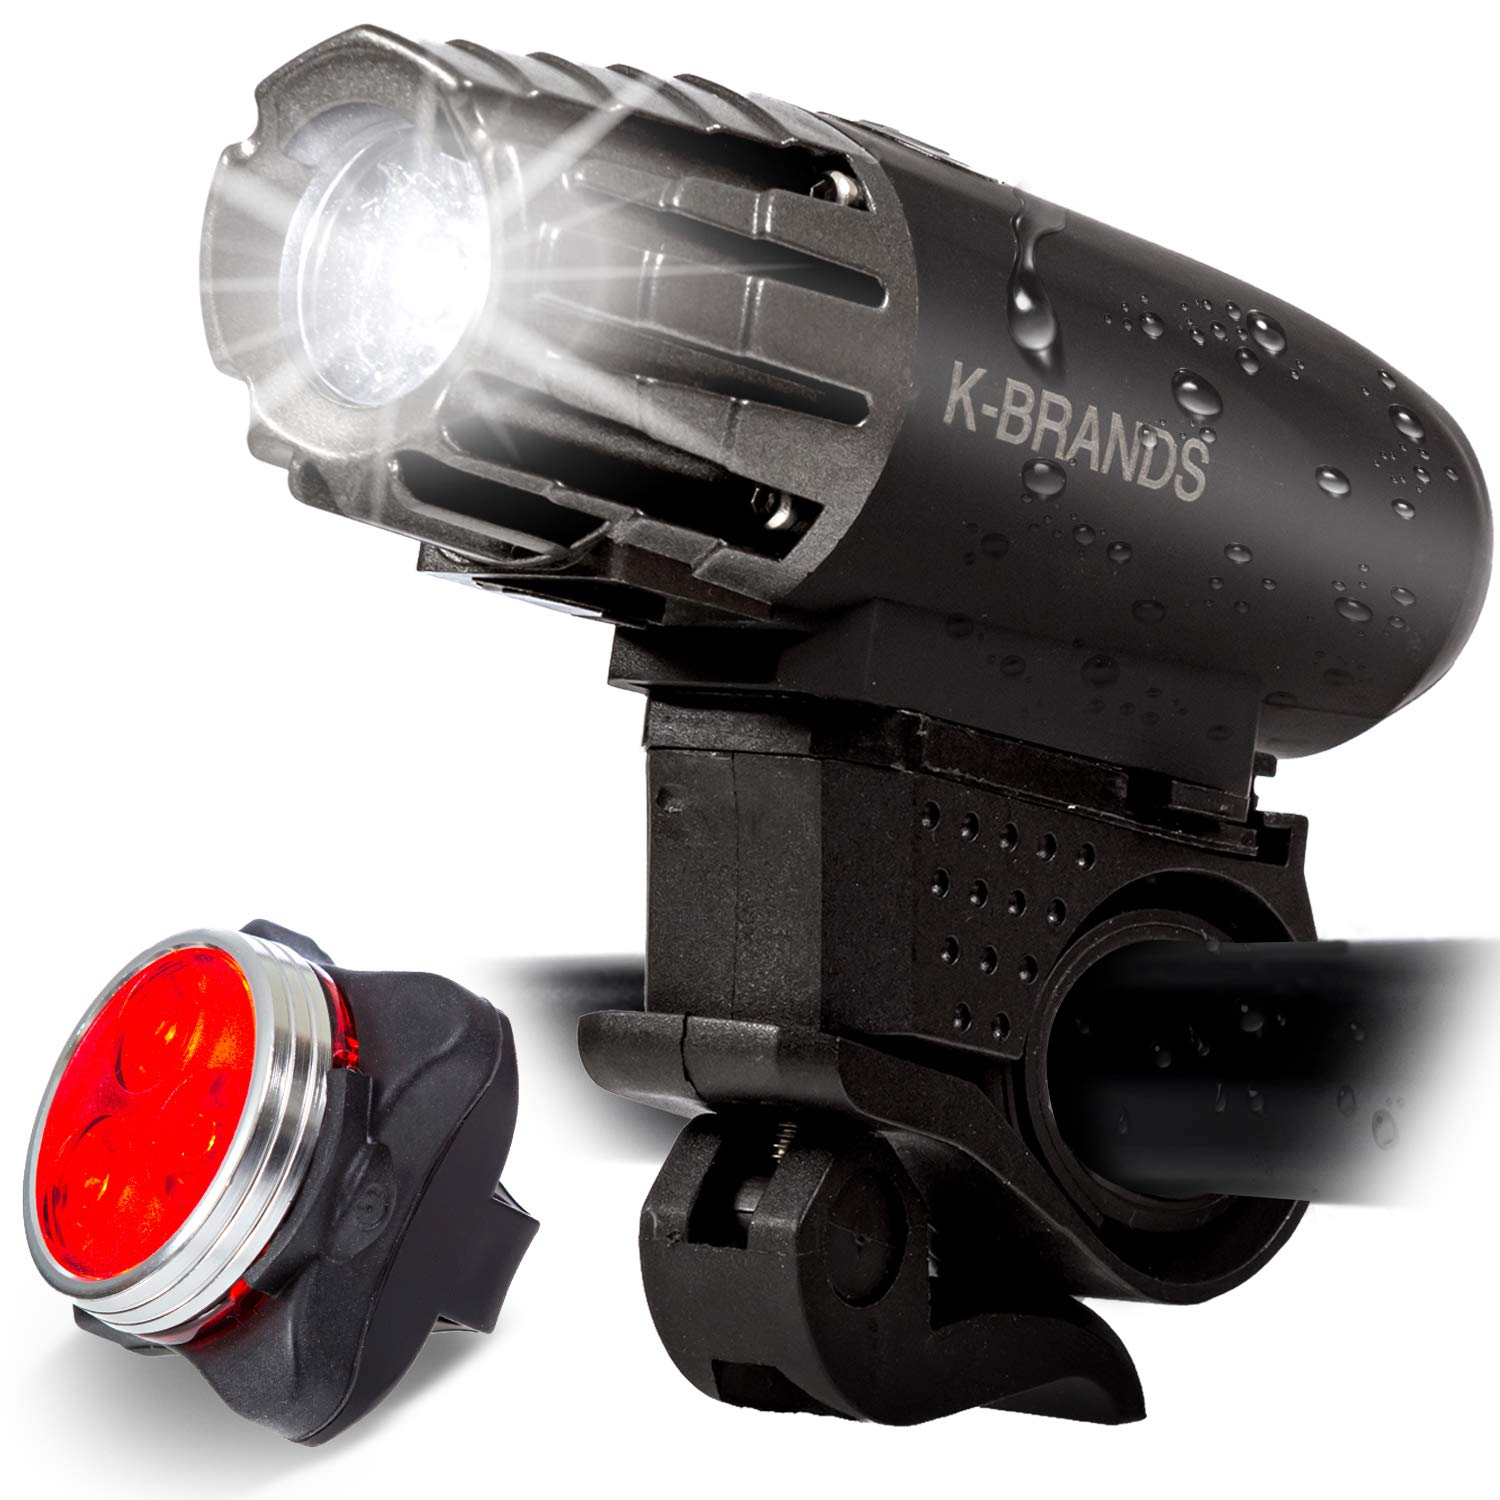 K-Brands Bike Light Set – USB Rechargeable Front and Back LED Headlight Tail Light – Bright Bicycle Flashlight Best Road Safety Lighting for Night Cycling – Fits All Bikes